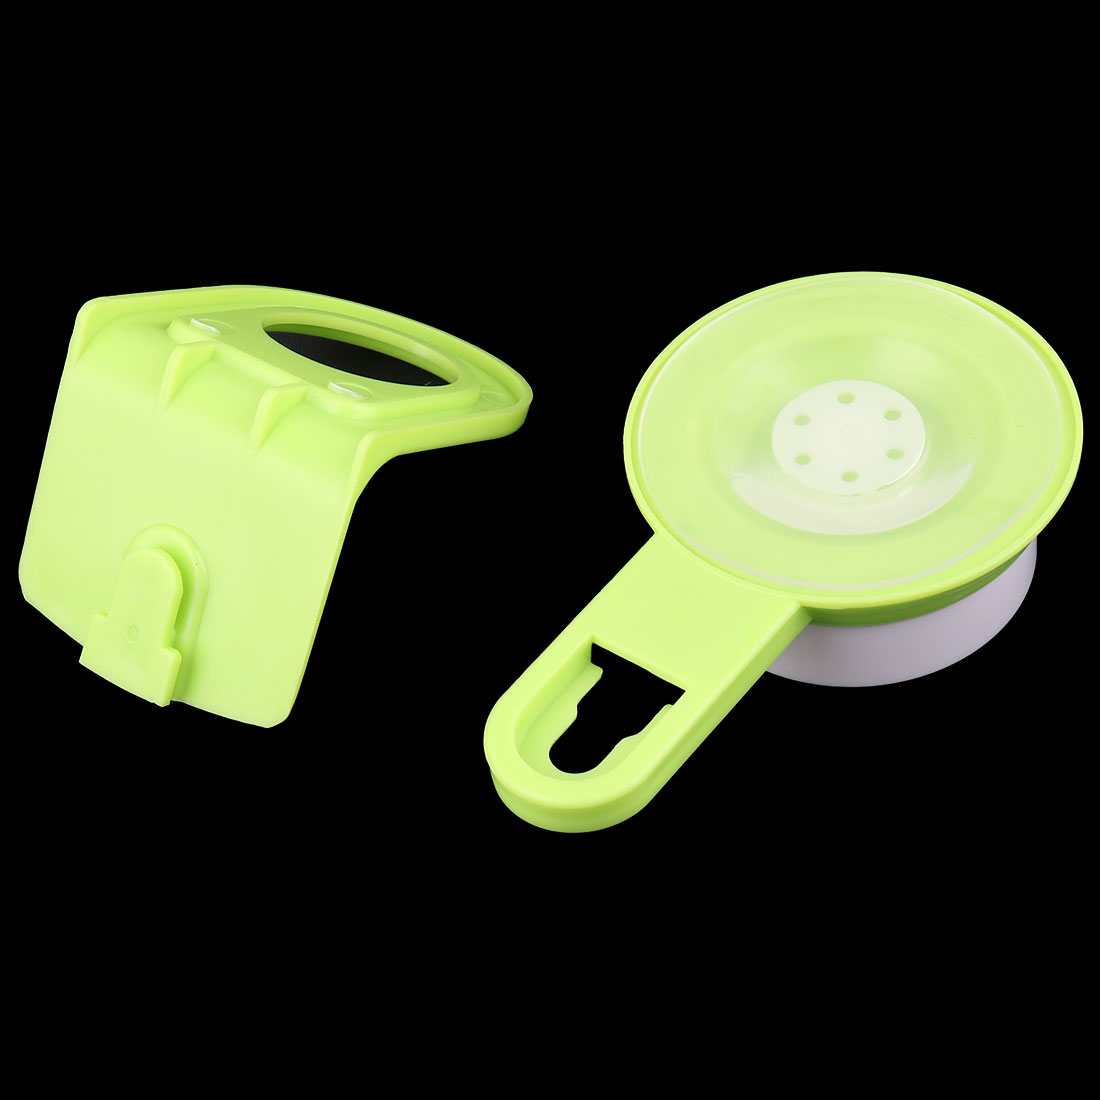 Bathroom Plastic Wall Mounted Suction Cup Body Wash Shower Gel Holder Rack Green - image 1 of 3